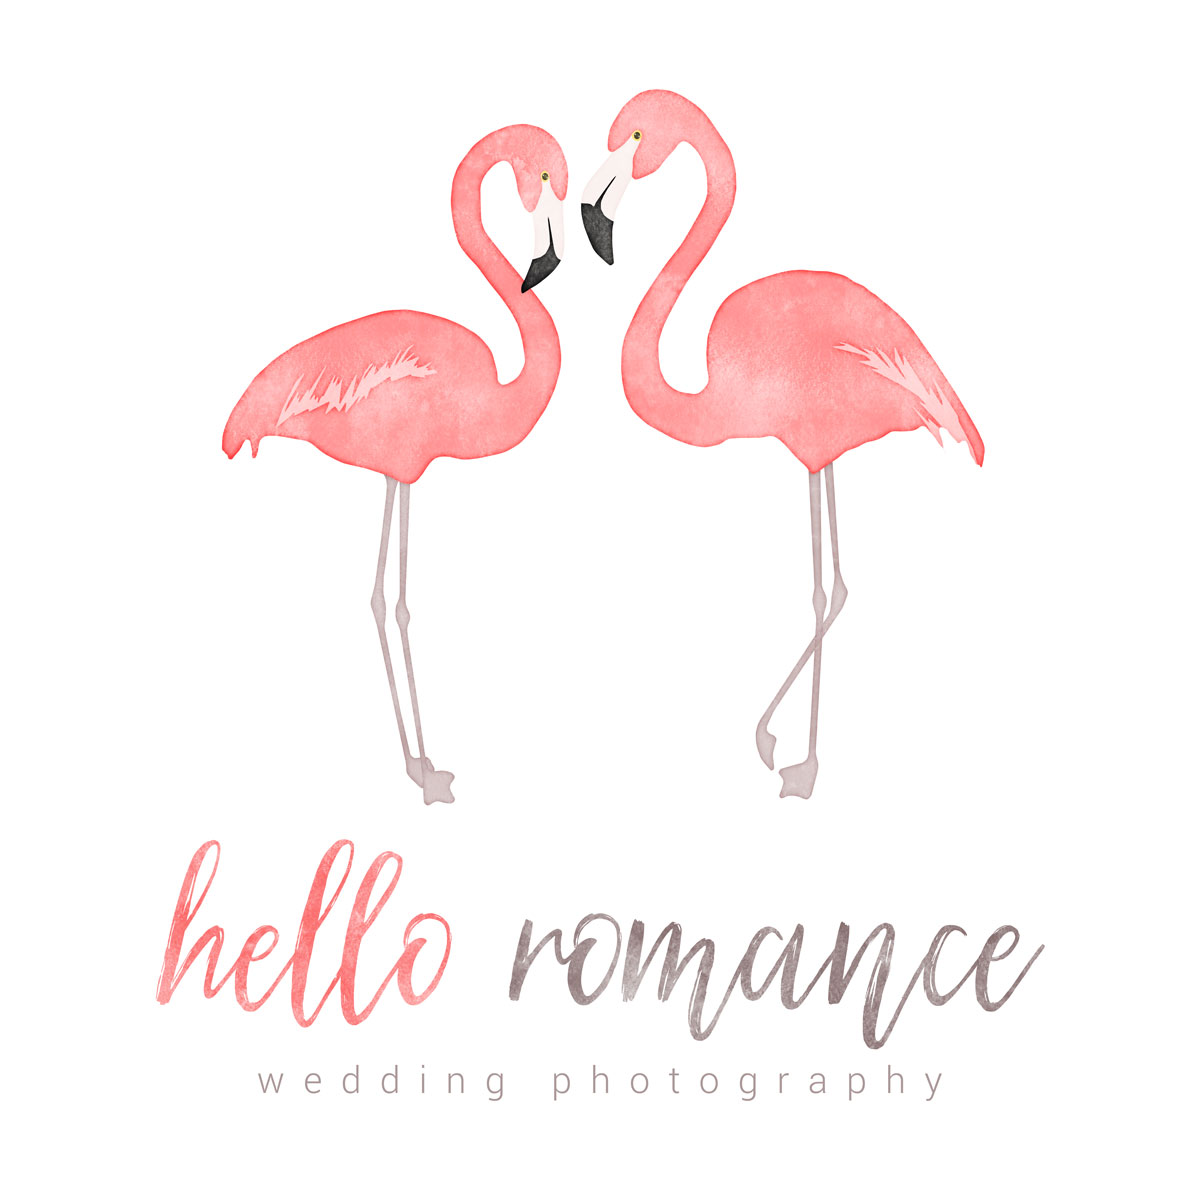 Hello Romance Wedding Photography Logo - logo design by PixelDuck